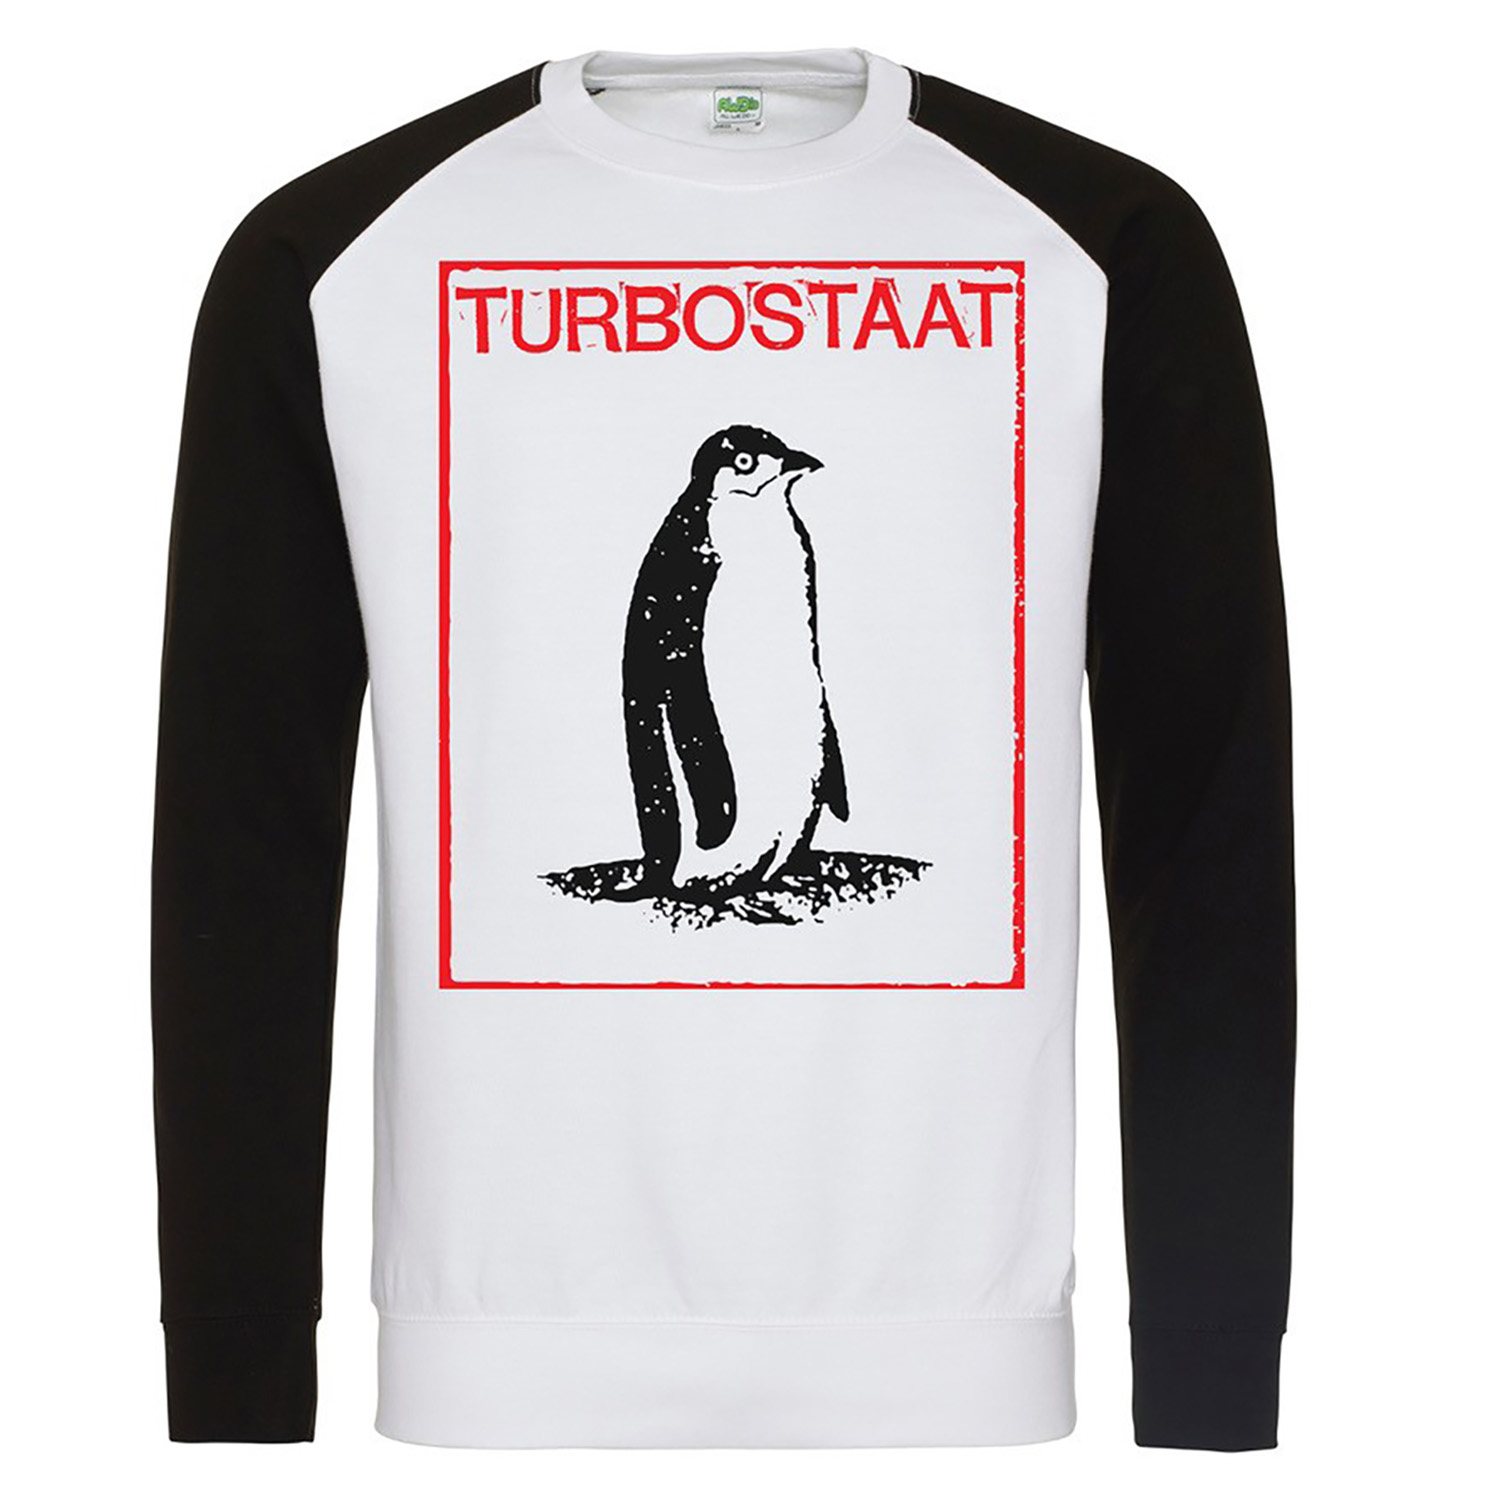 Turbostaat Pinguin Sweater, schwarzweiss